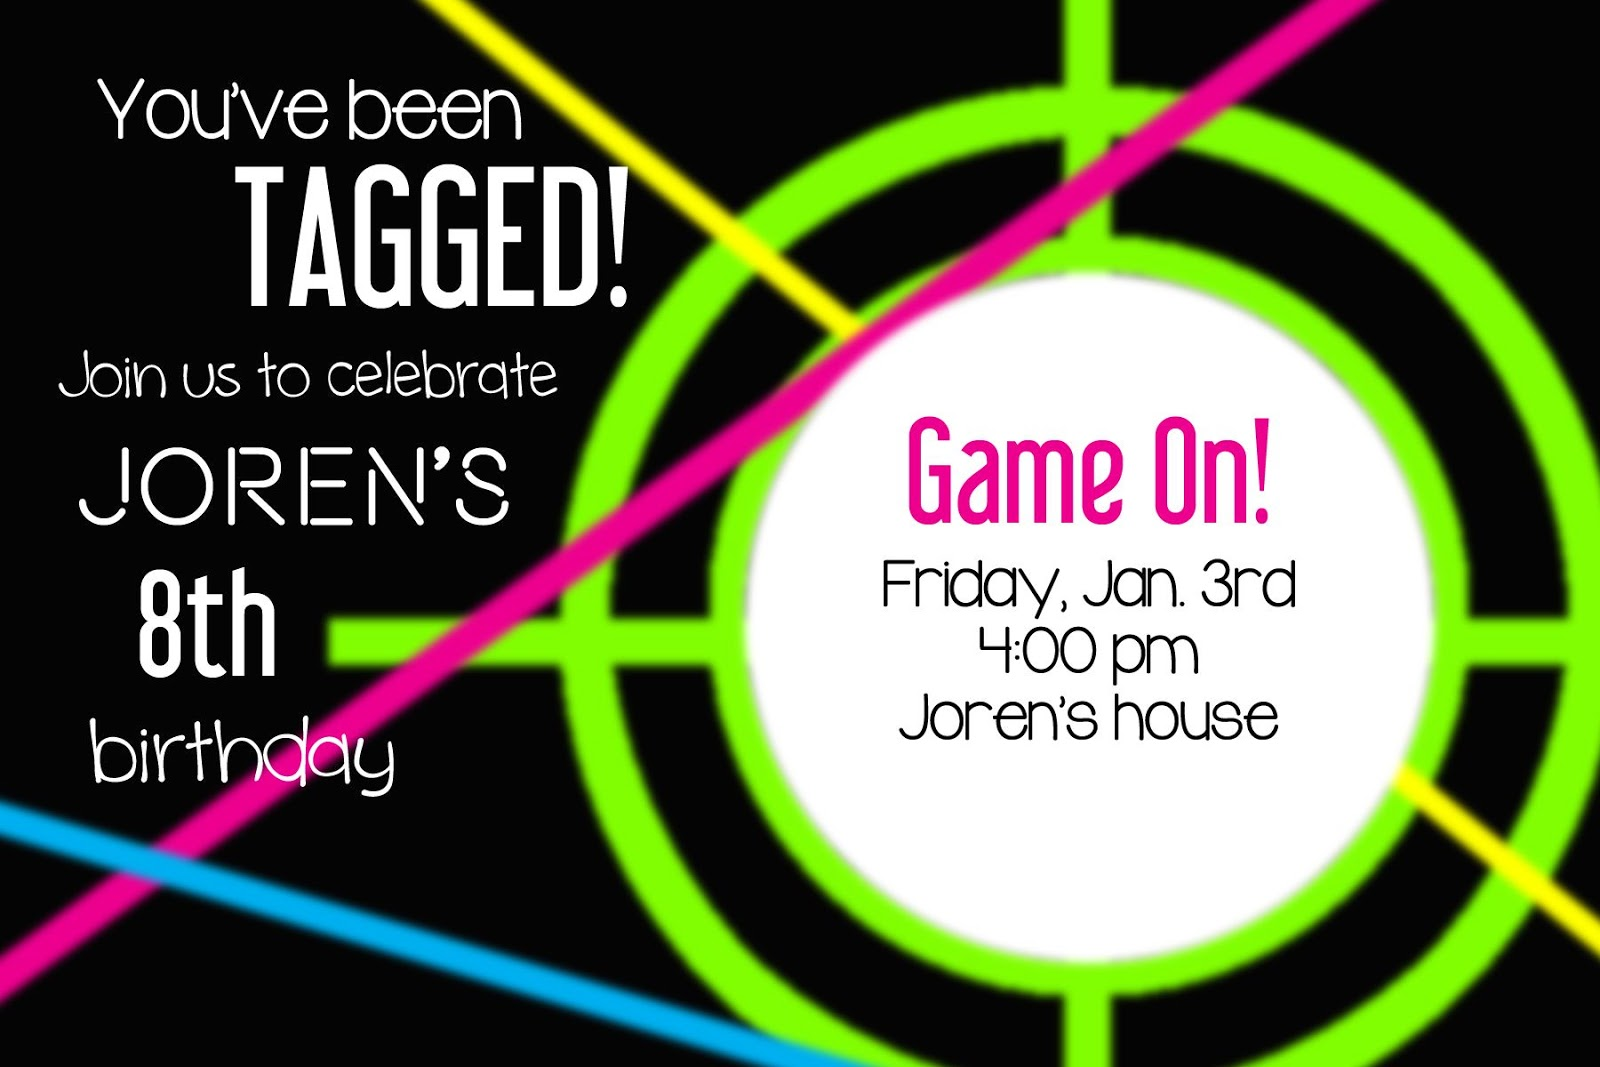 free laser tag birthday invitations ; laser-tag-party-invitations-and-get-inspiration-to-create-the-Party-invitation-design-of-your-dreams-1